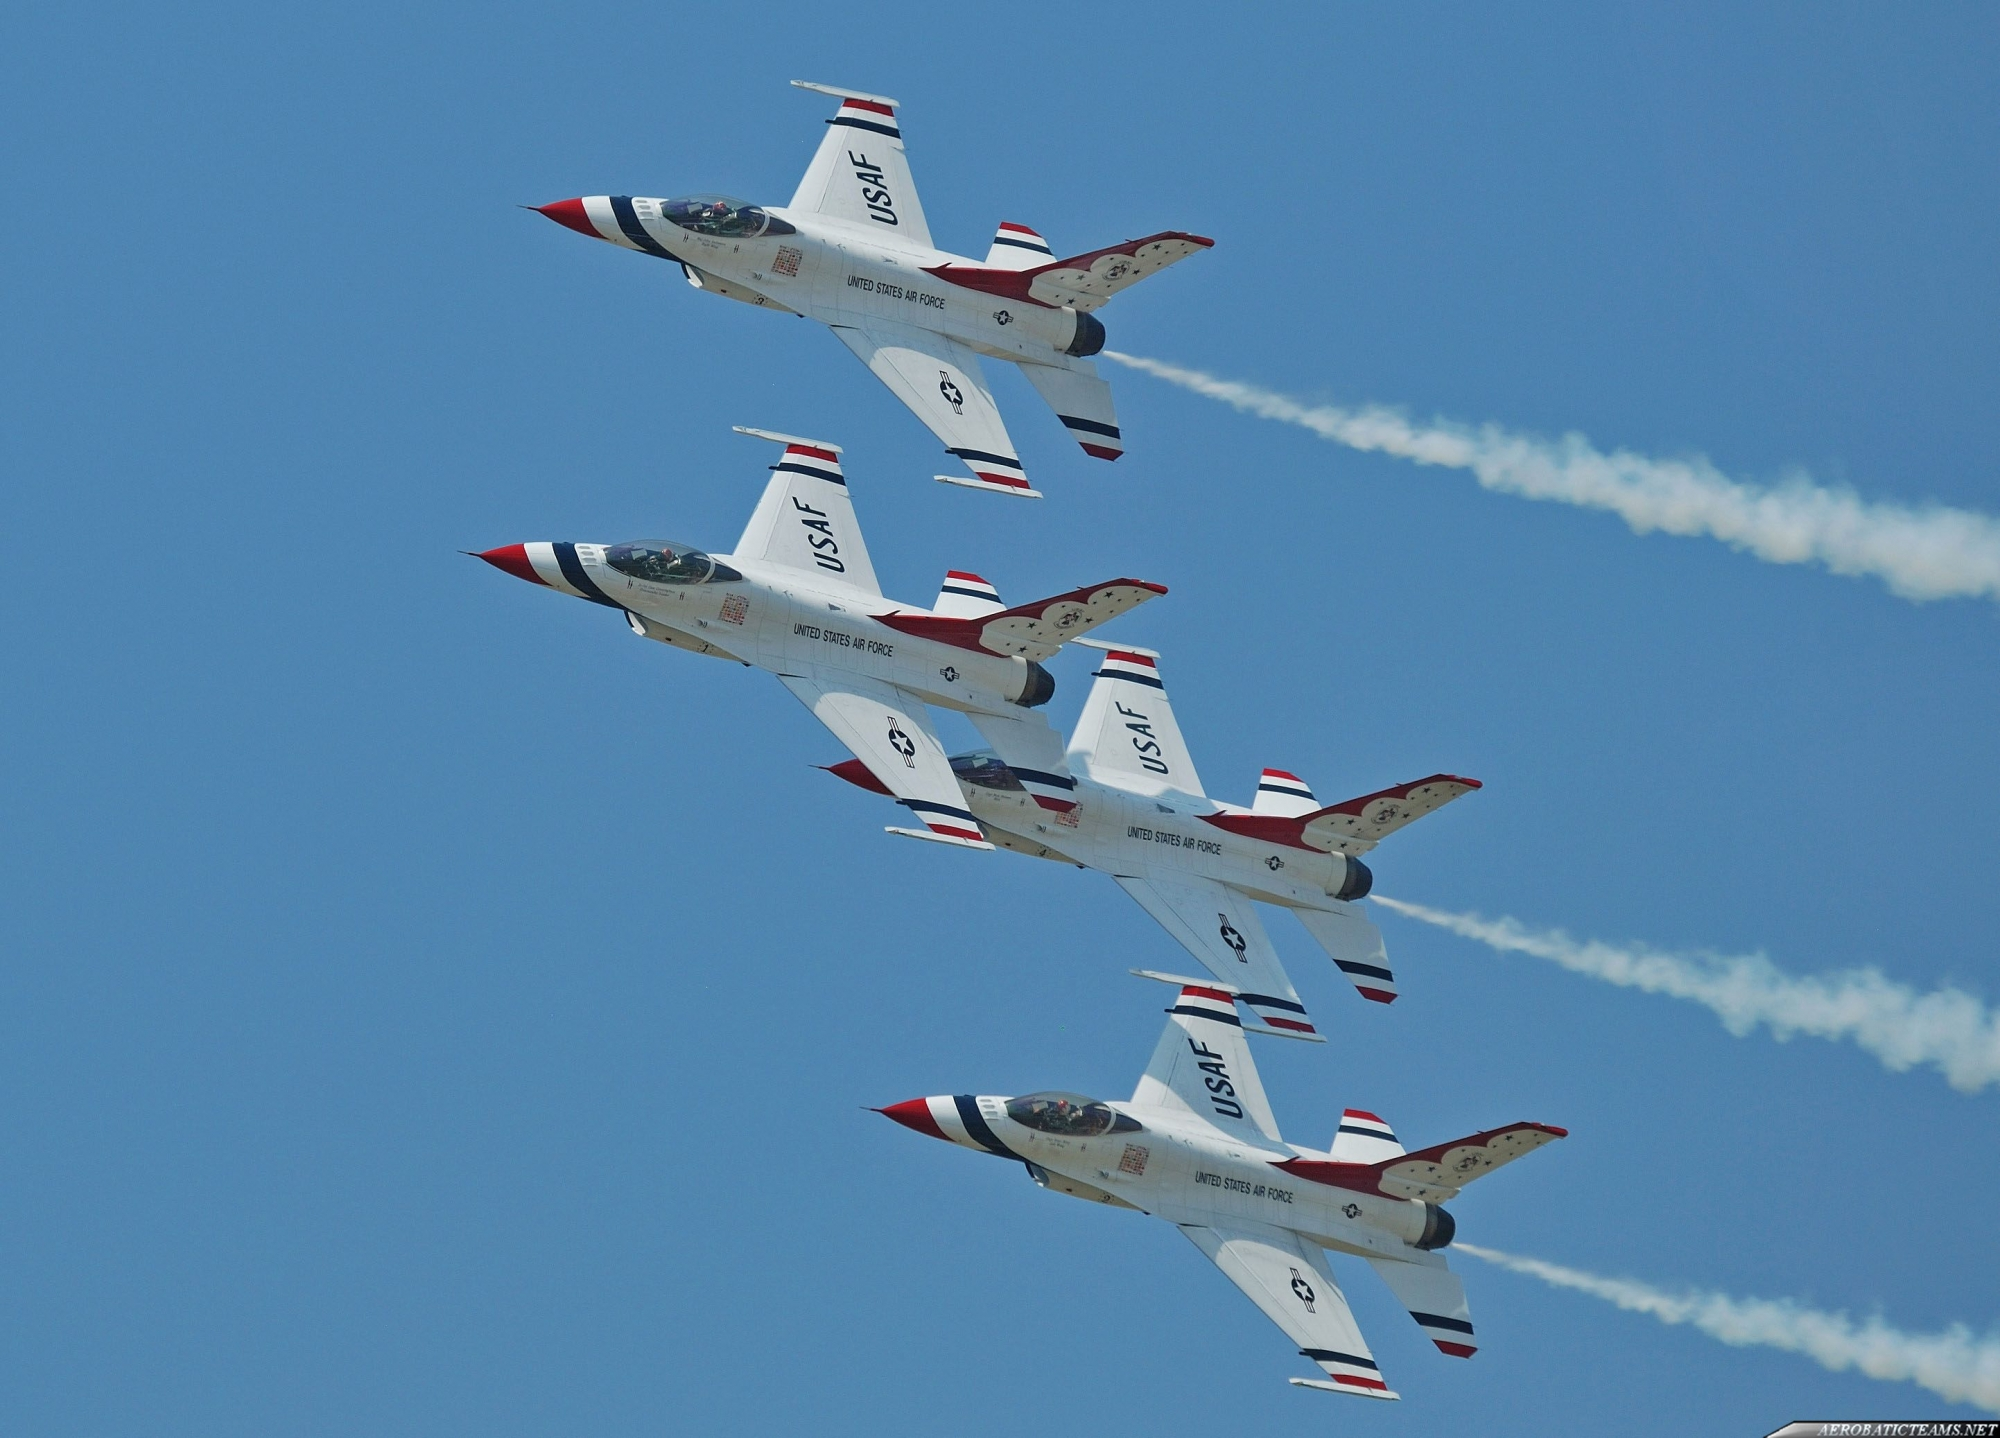 Air Force Thunderbirds 2019 Schedule Thunderbirds 2019 Schedule